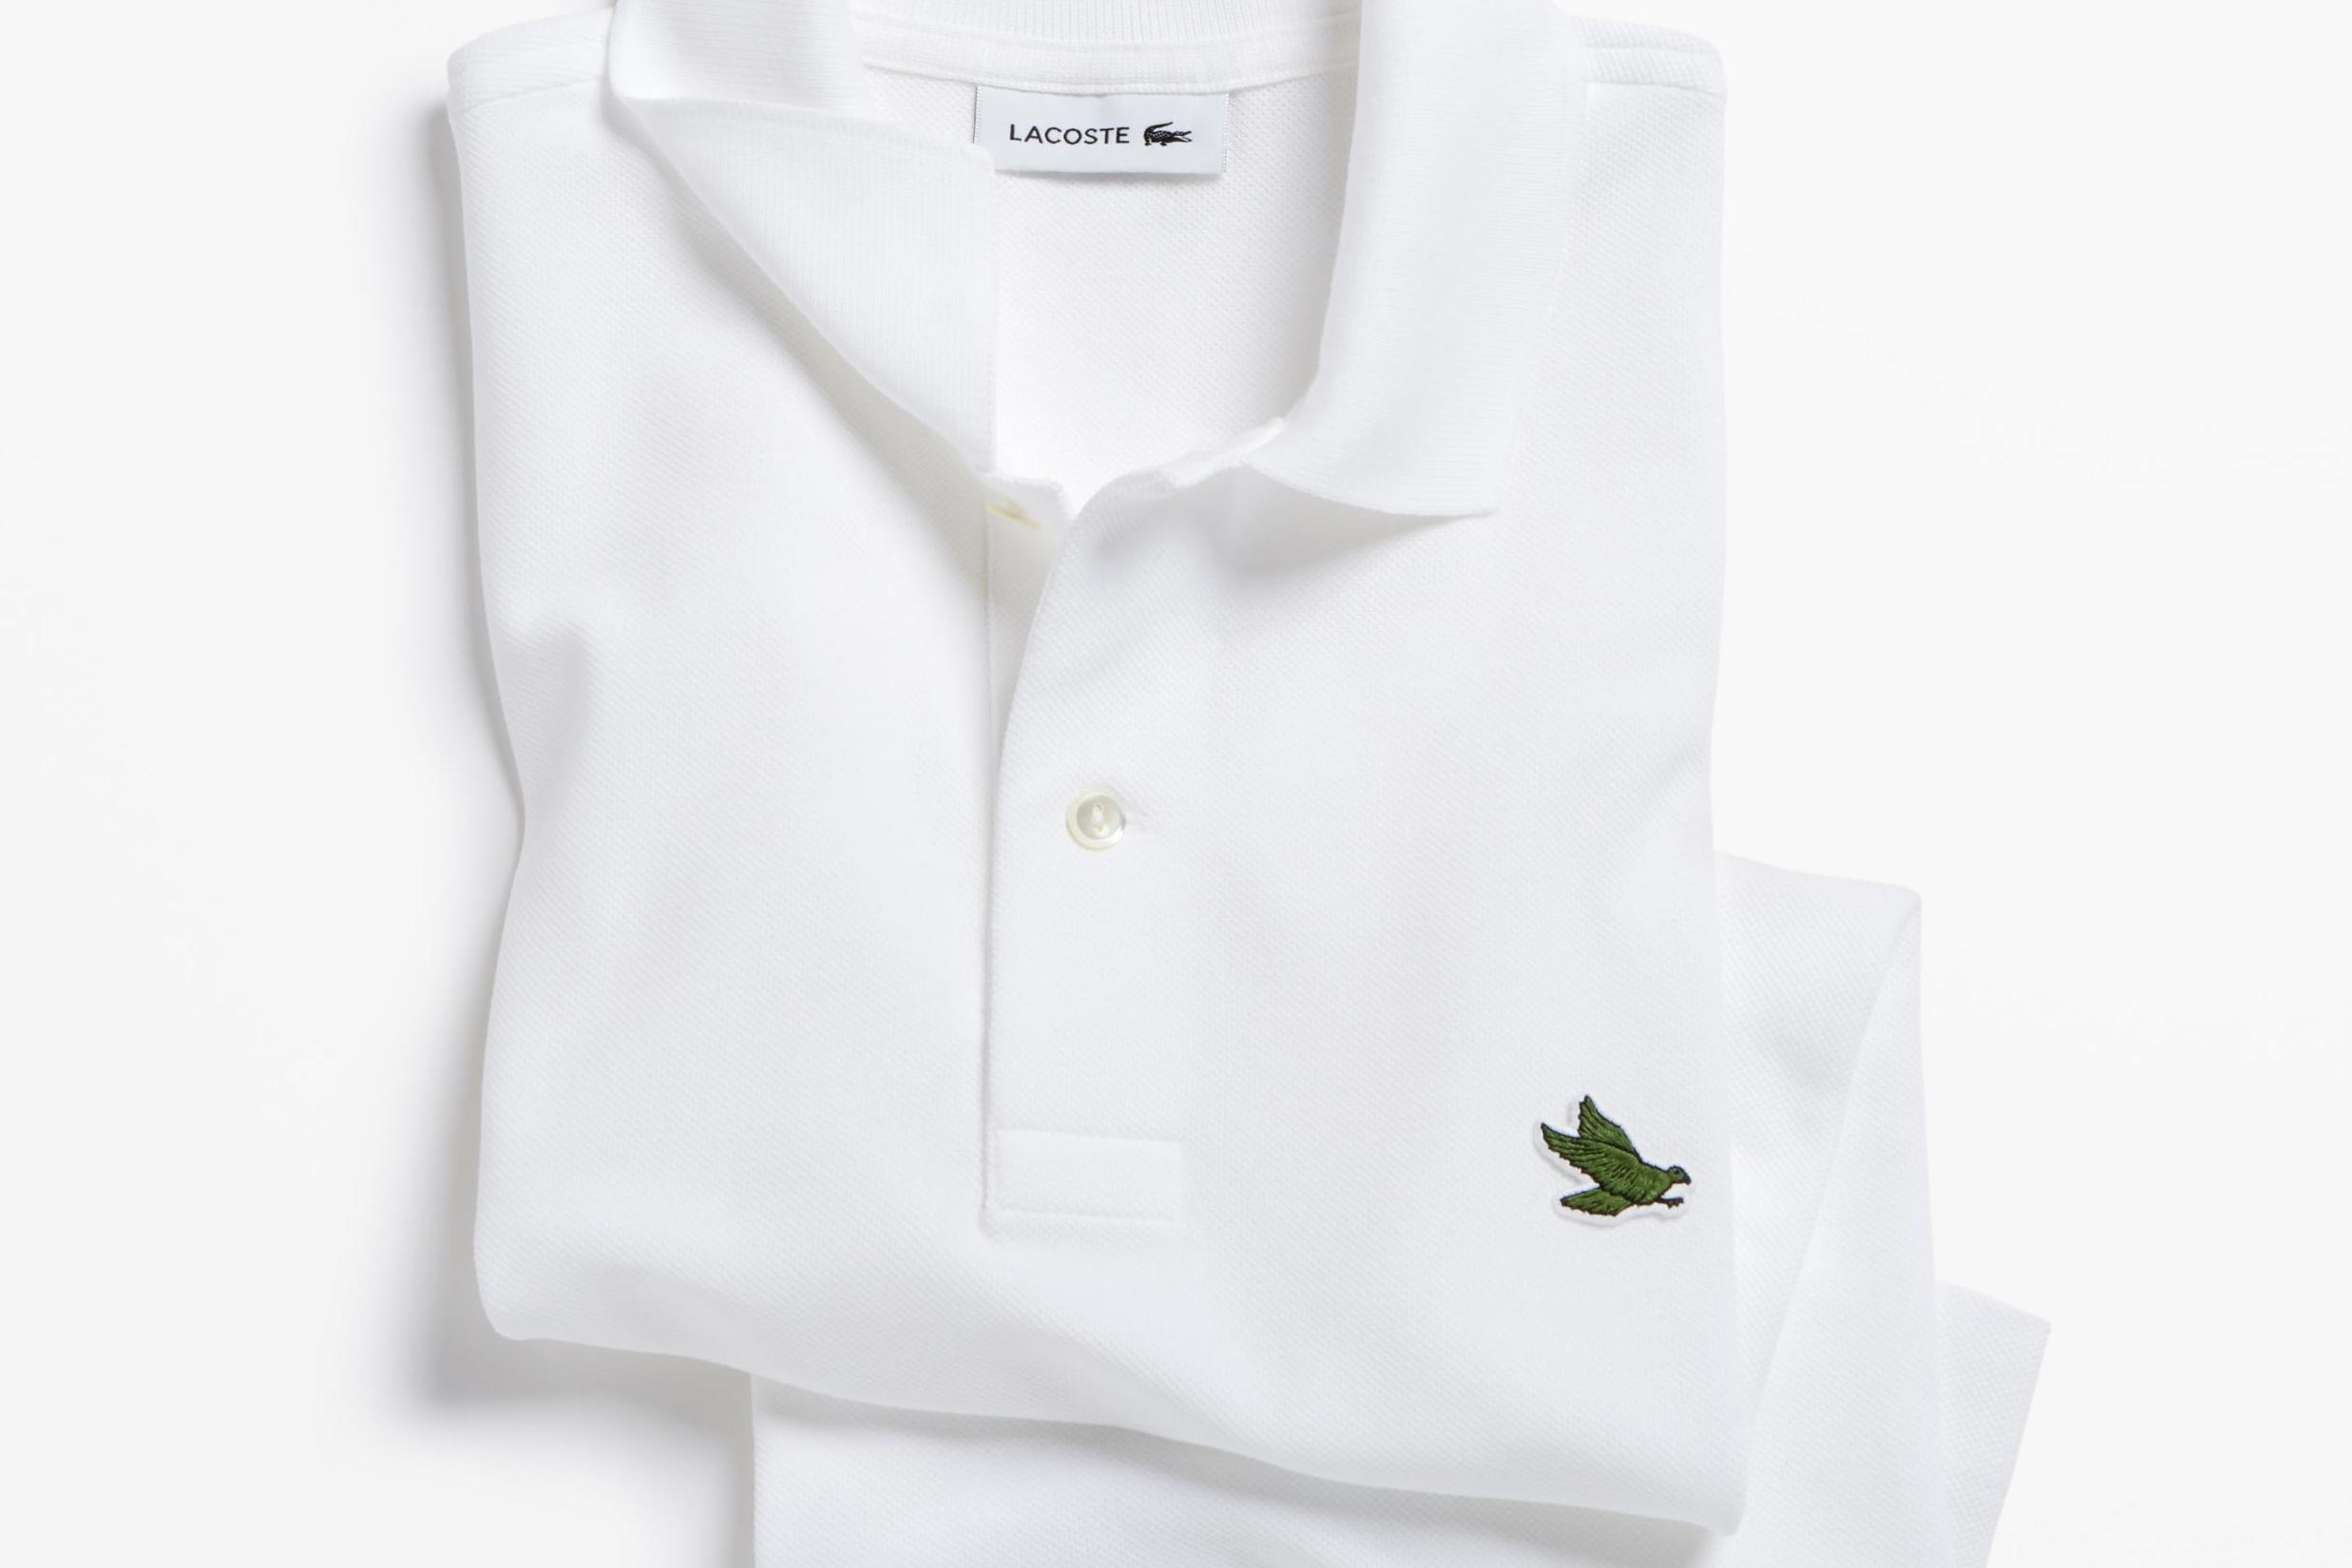 Lacoste Replaces Iconic Crocodile Logo With Endangered Species As